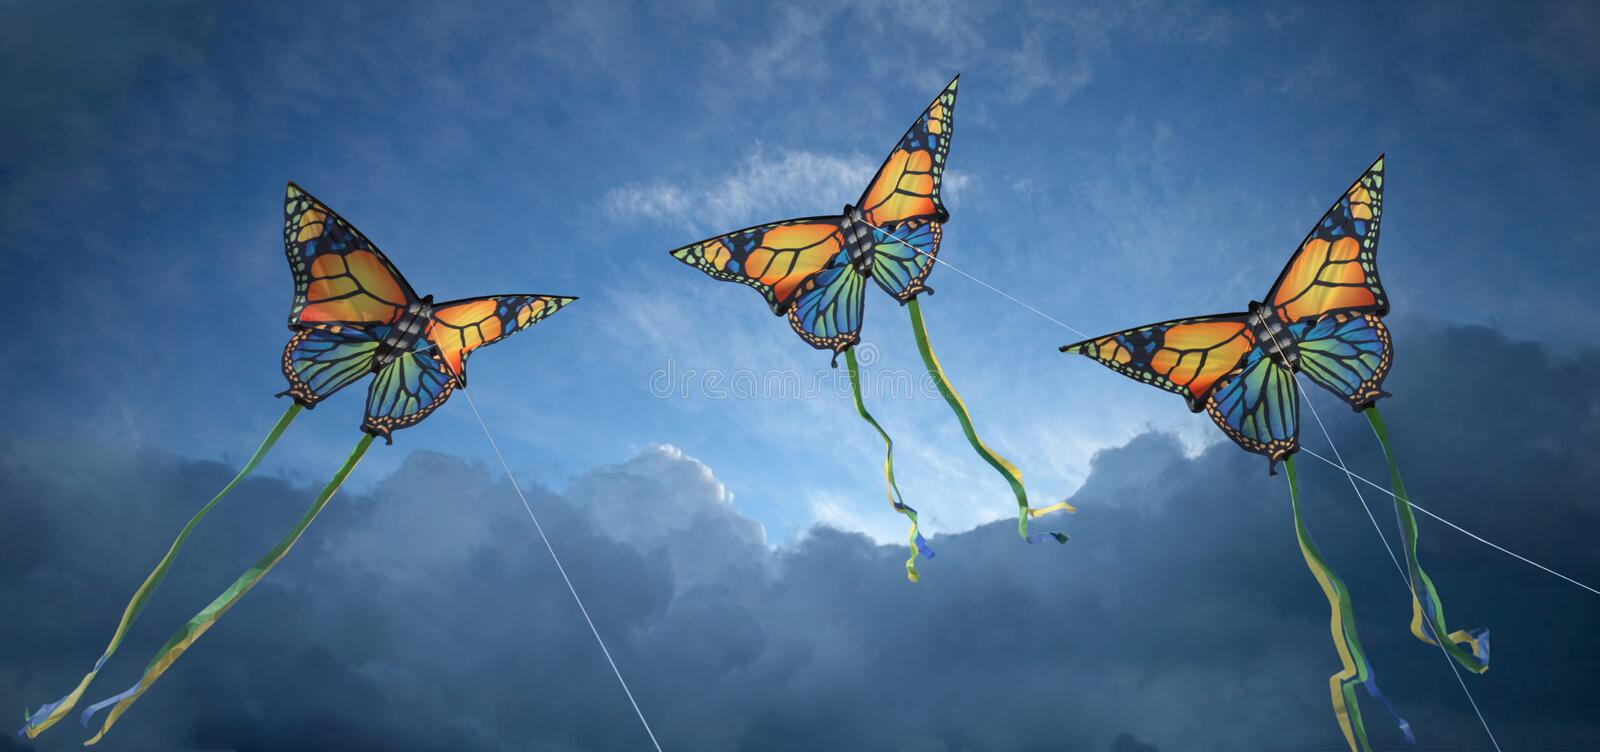 Download Kites stock image. Image of blue, light, butterfly, aspiration - 19180405